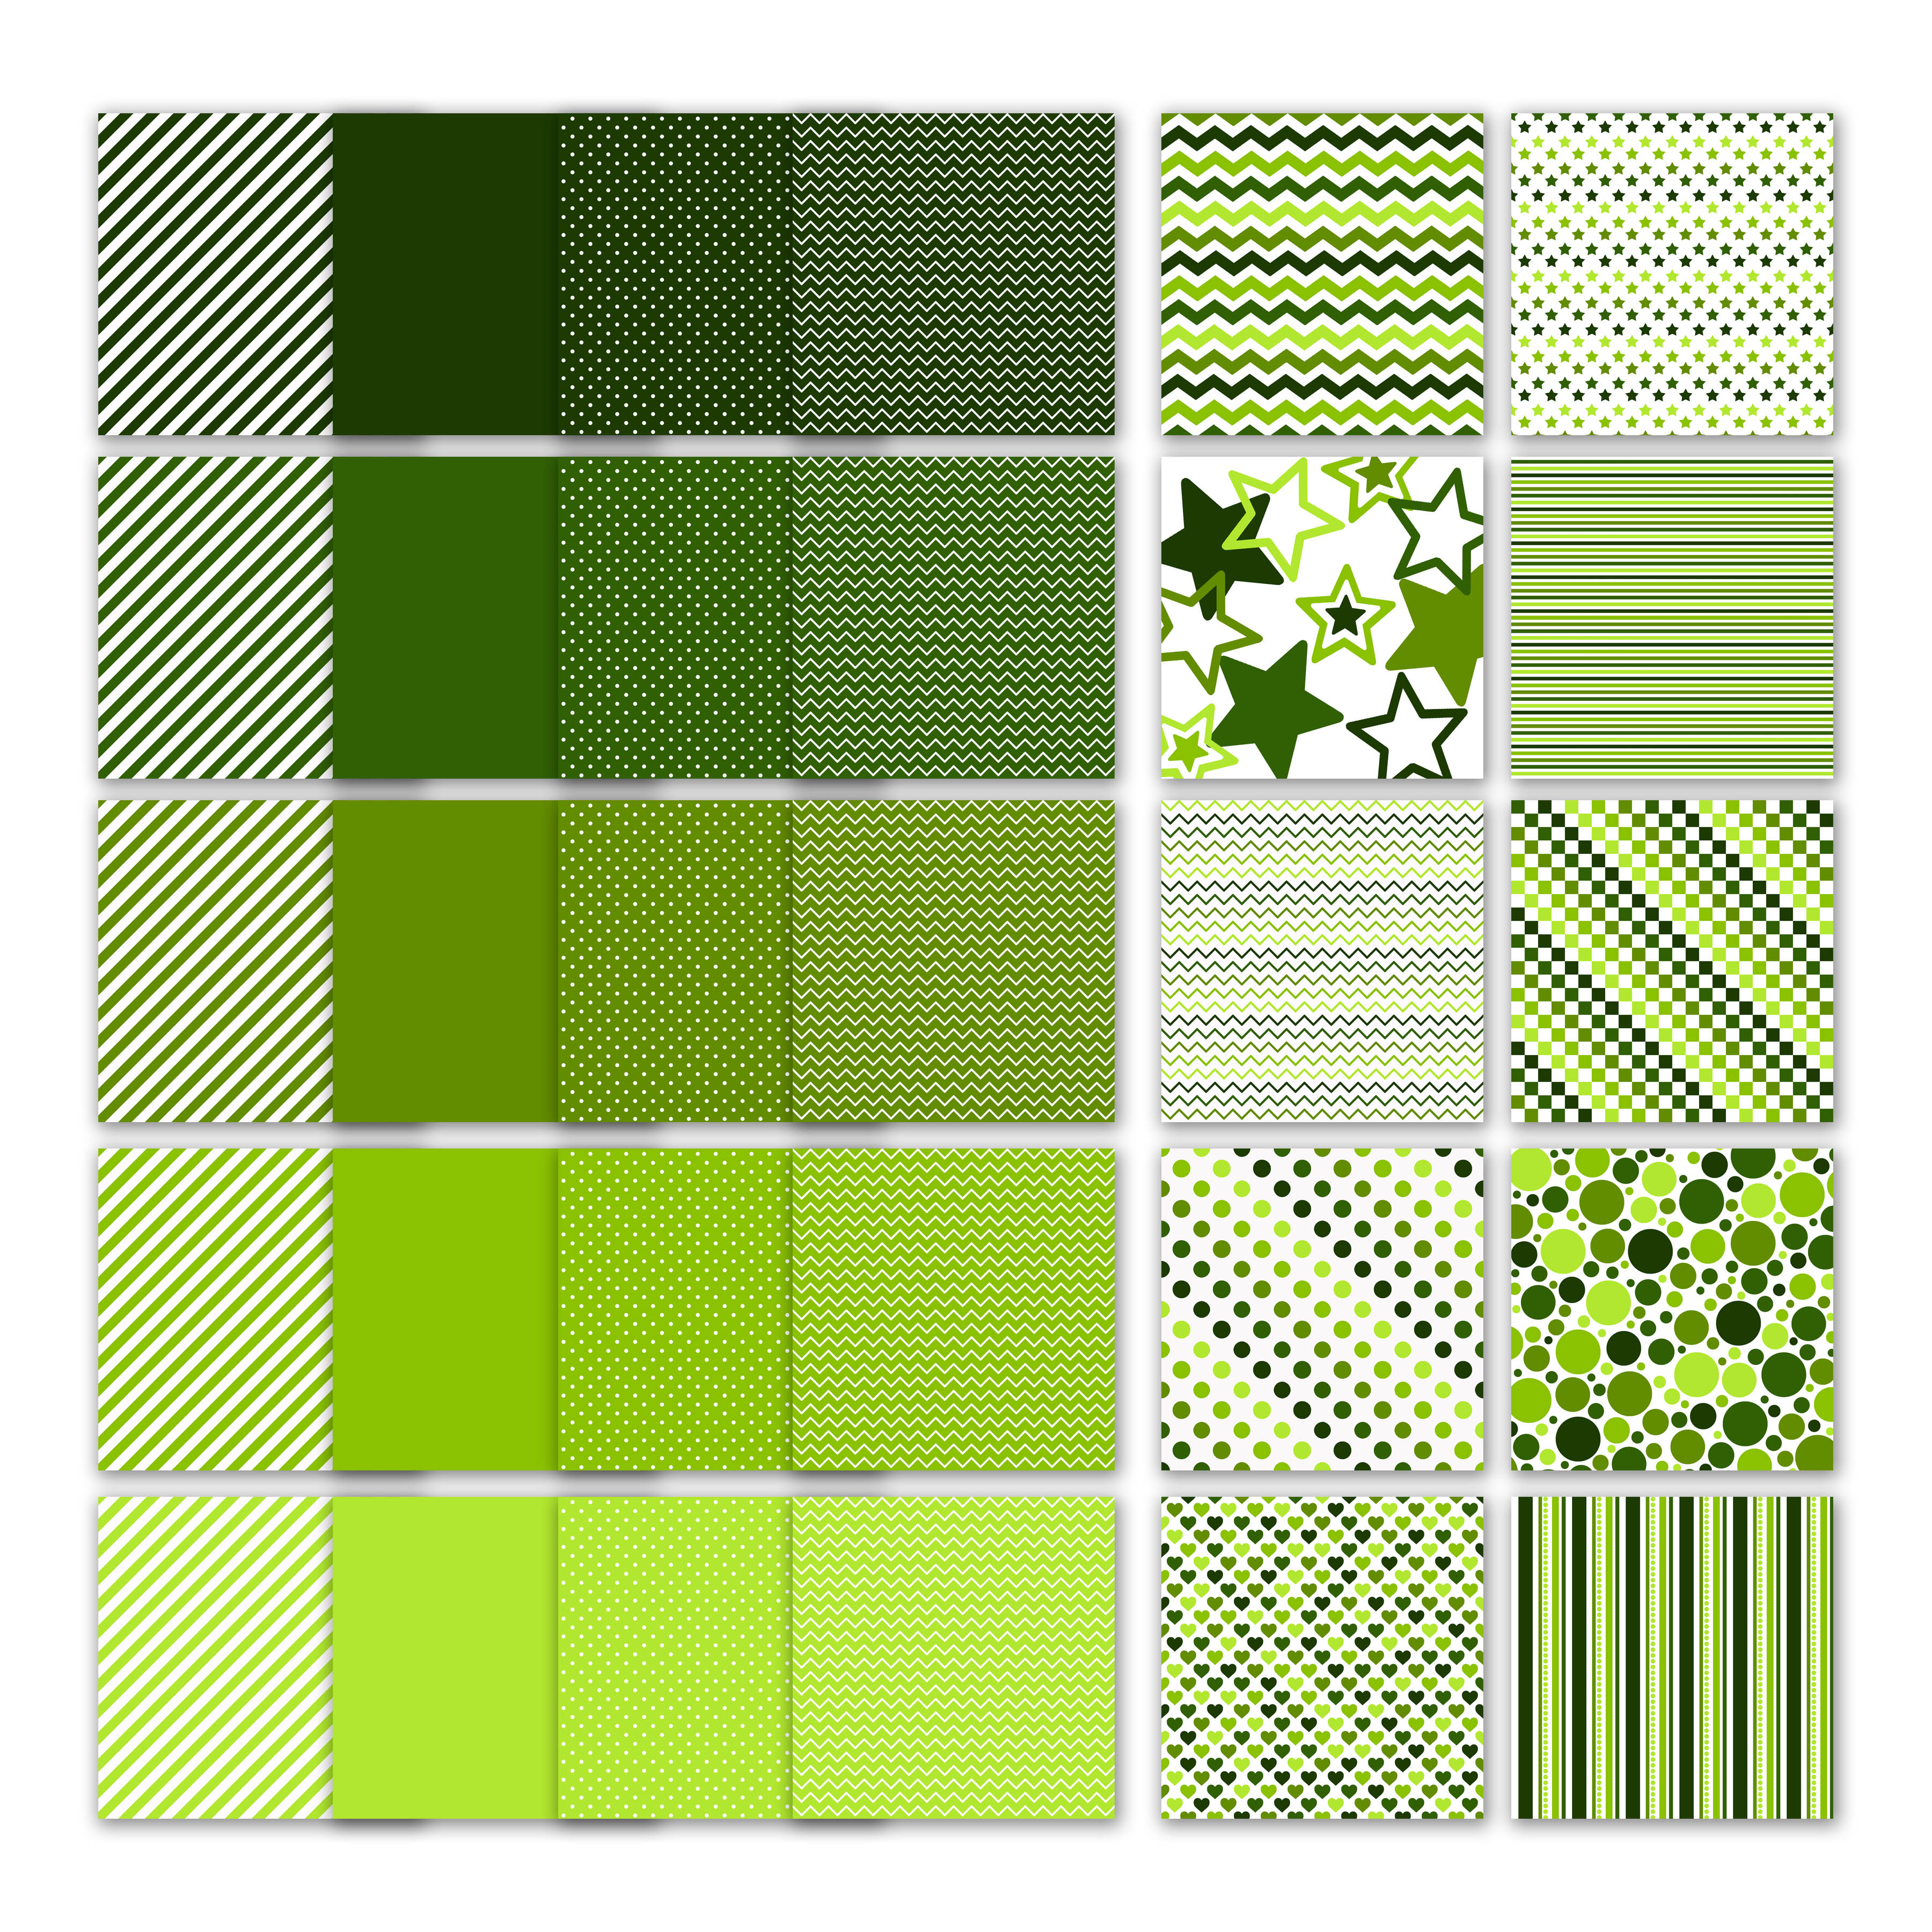 Green Digital Paper Graphic Backgrounds By oldmarketdesigns - Image 2